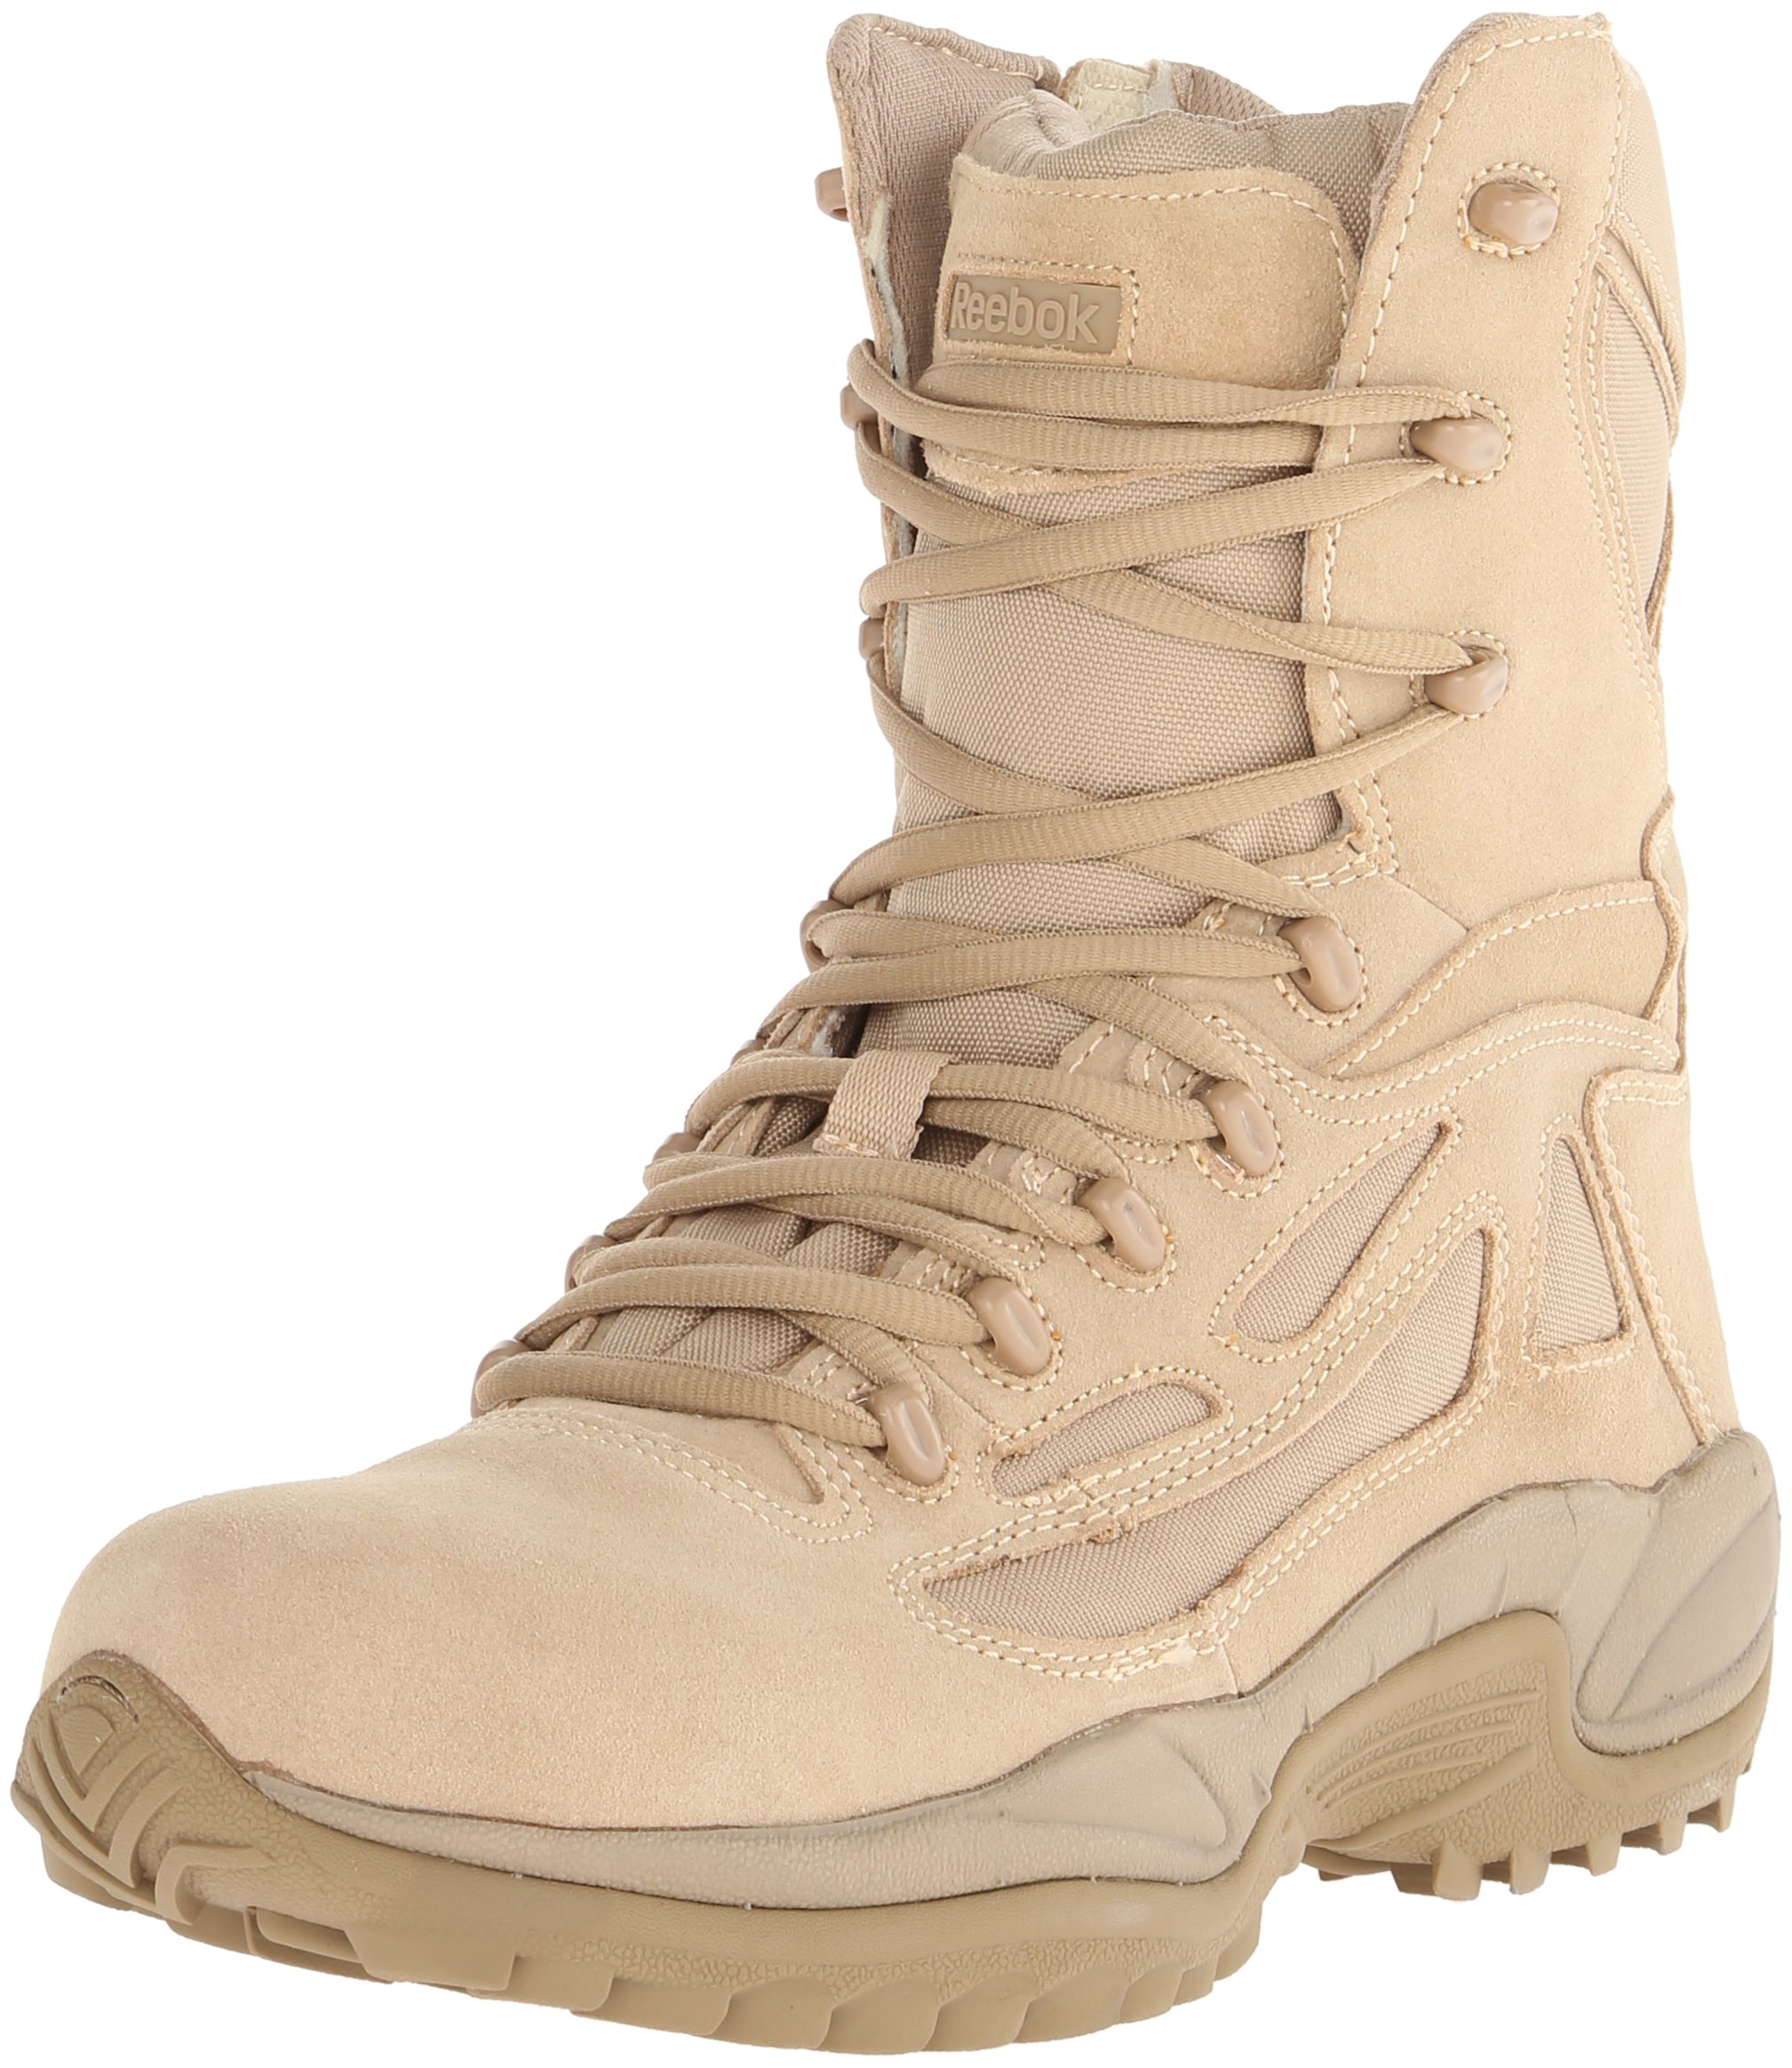 Reebok Work Men's Rapid Response RB8895 Security Friendly,100% Non metallic Boot,Desert Tan,12 W US by Reebok Work